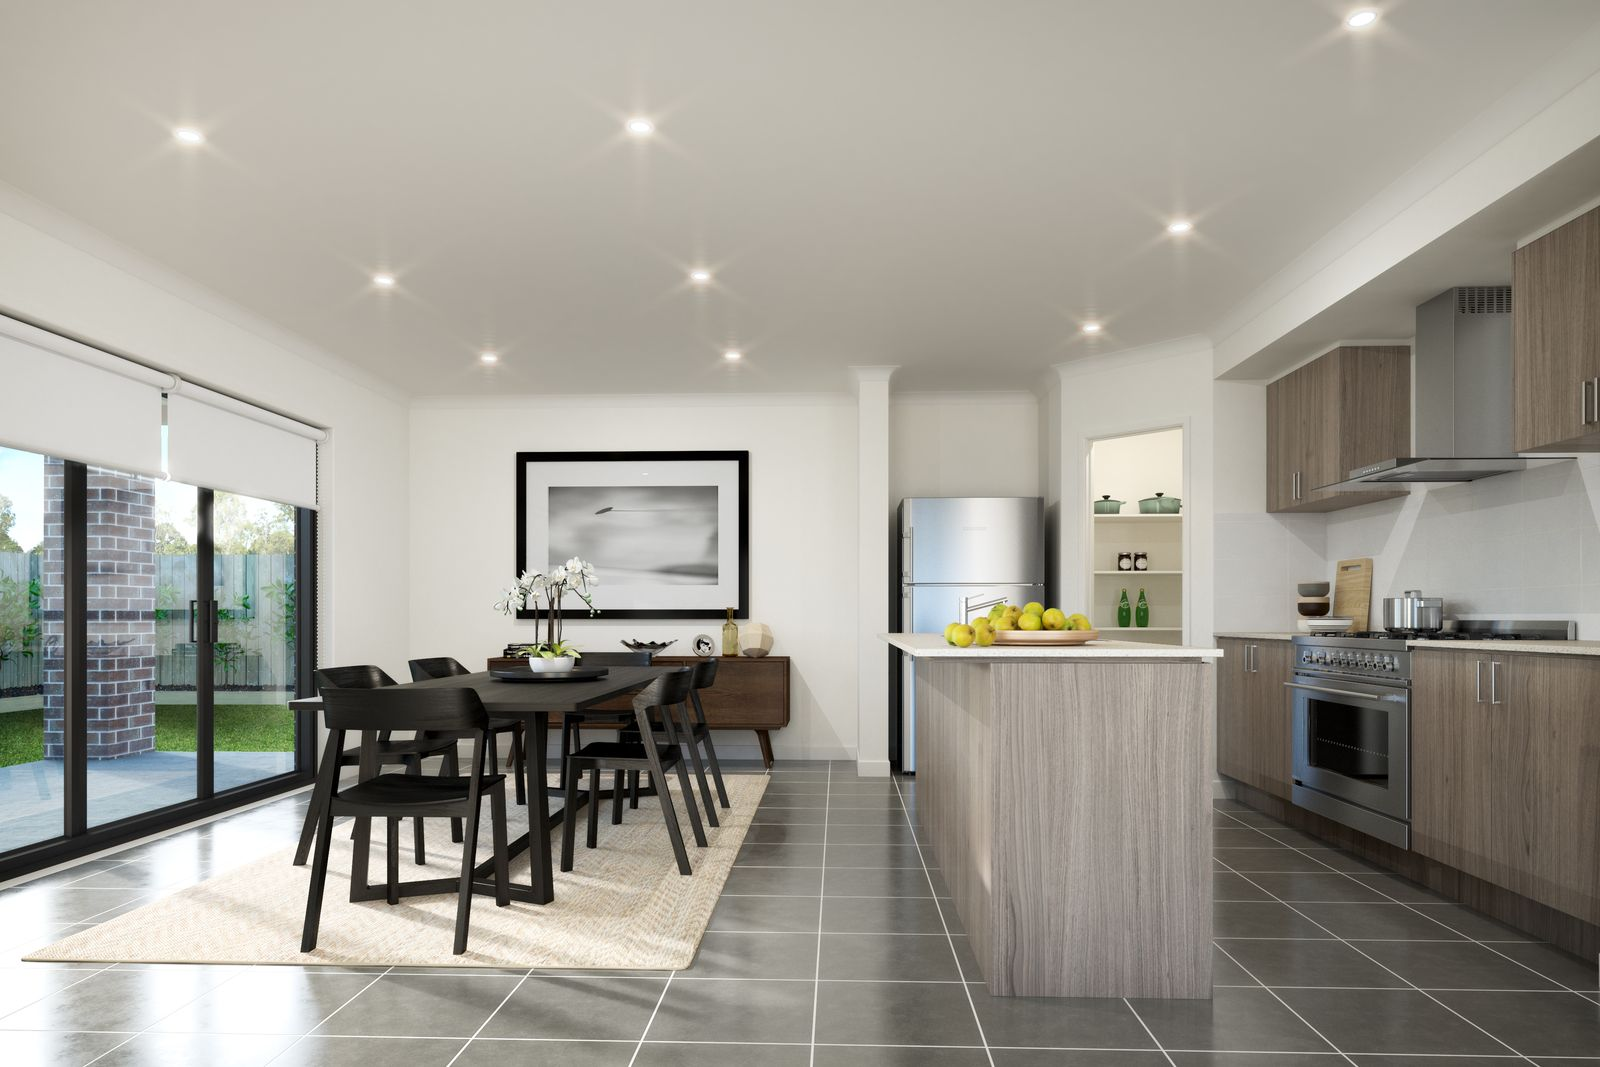 Lot 602 Outfield Road, Clyde VIC 3978, Image 2